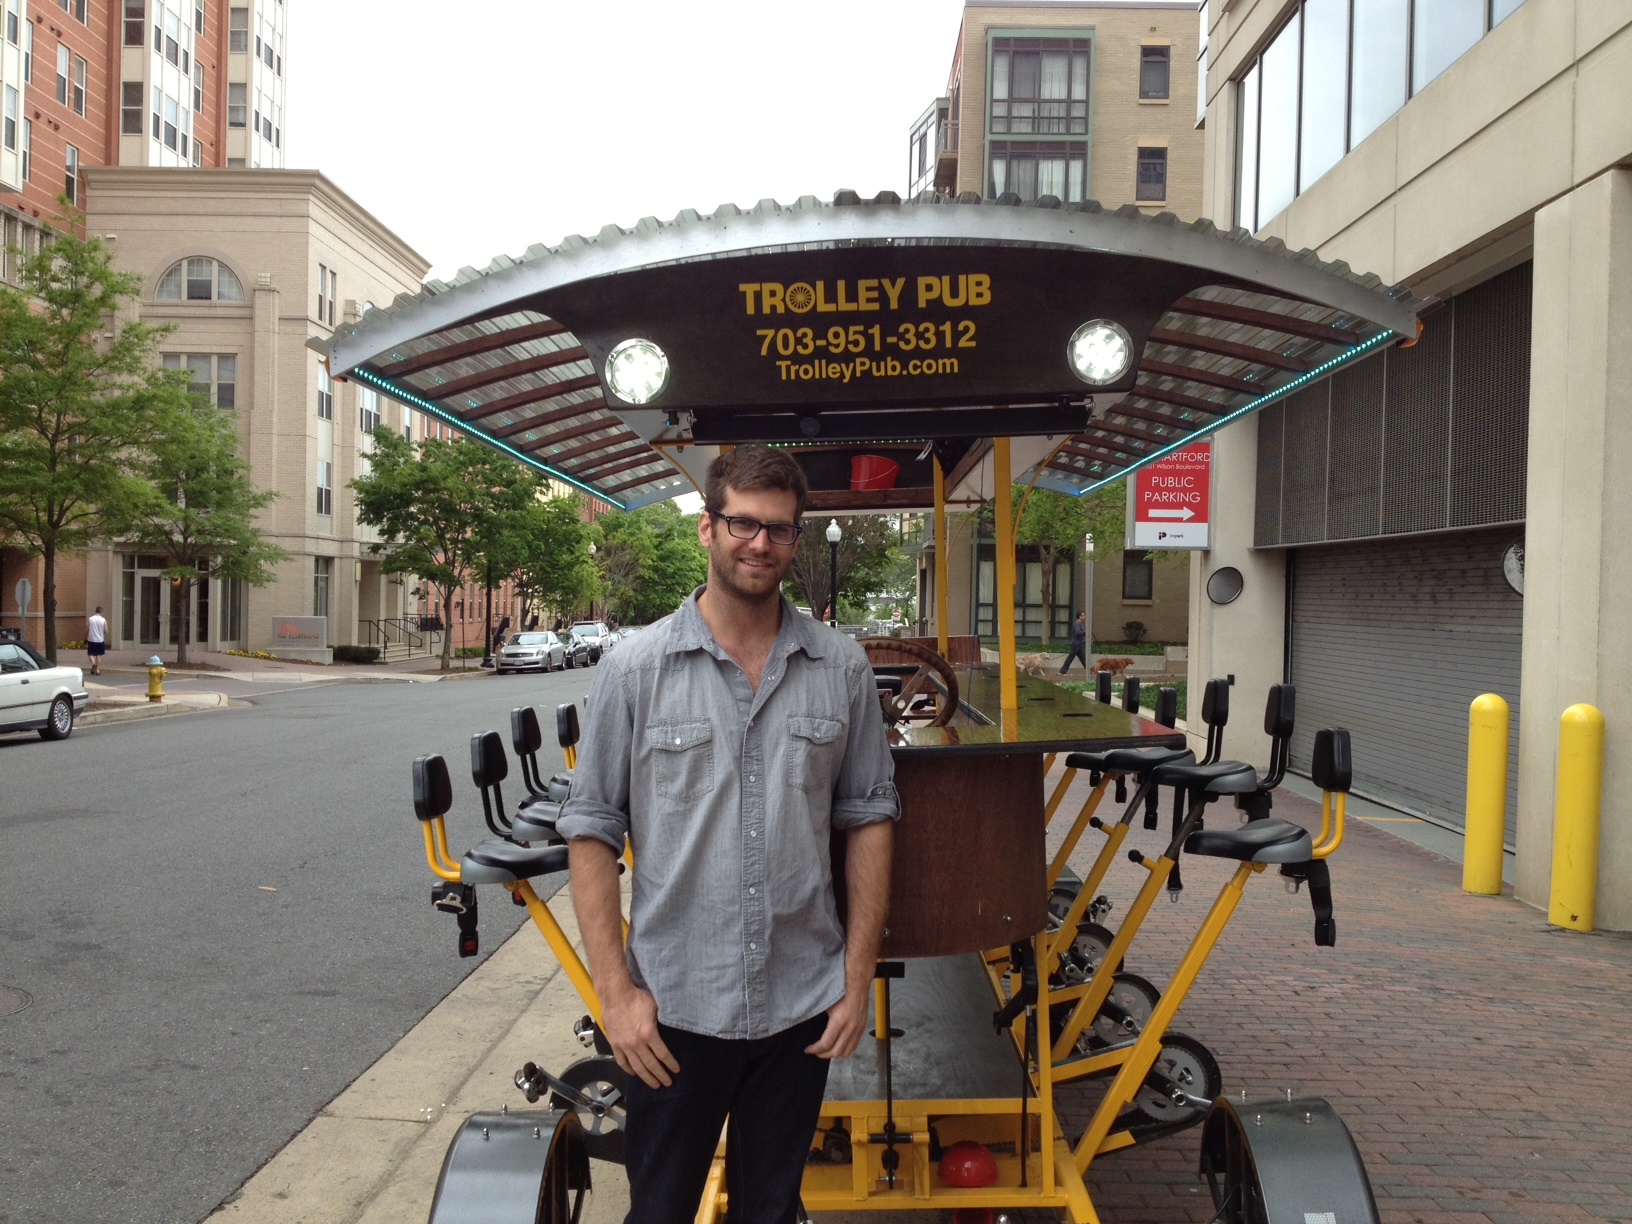 For now, Arlington Trolley Pub pedals dry to local businesses